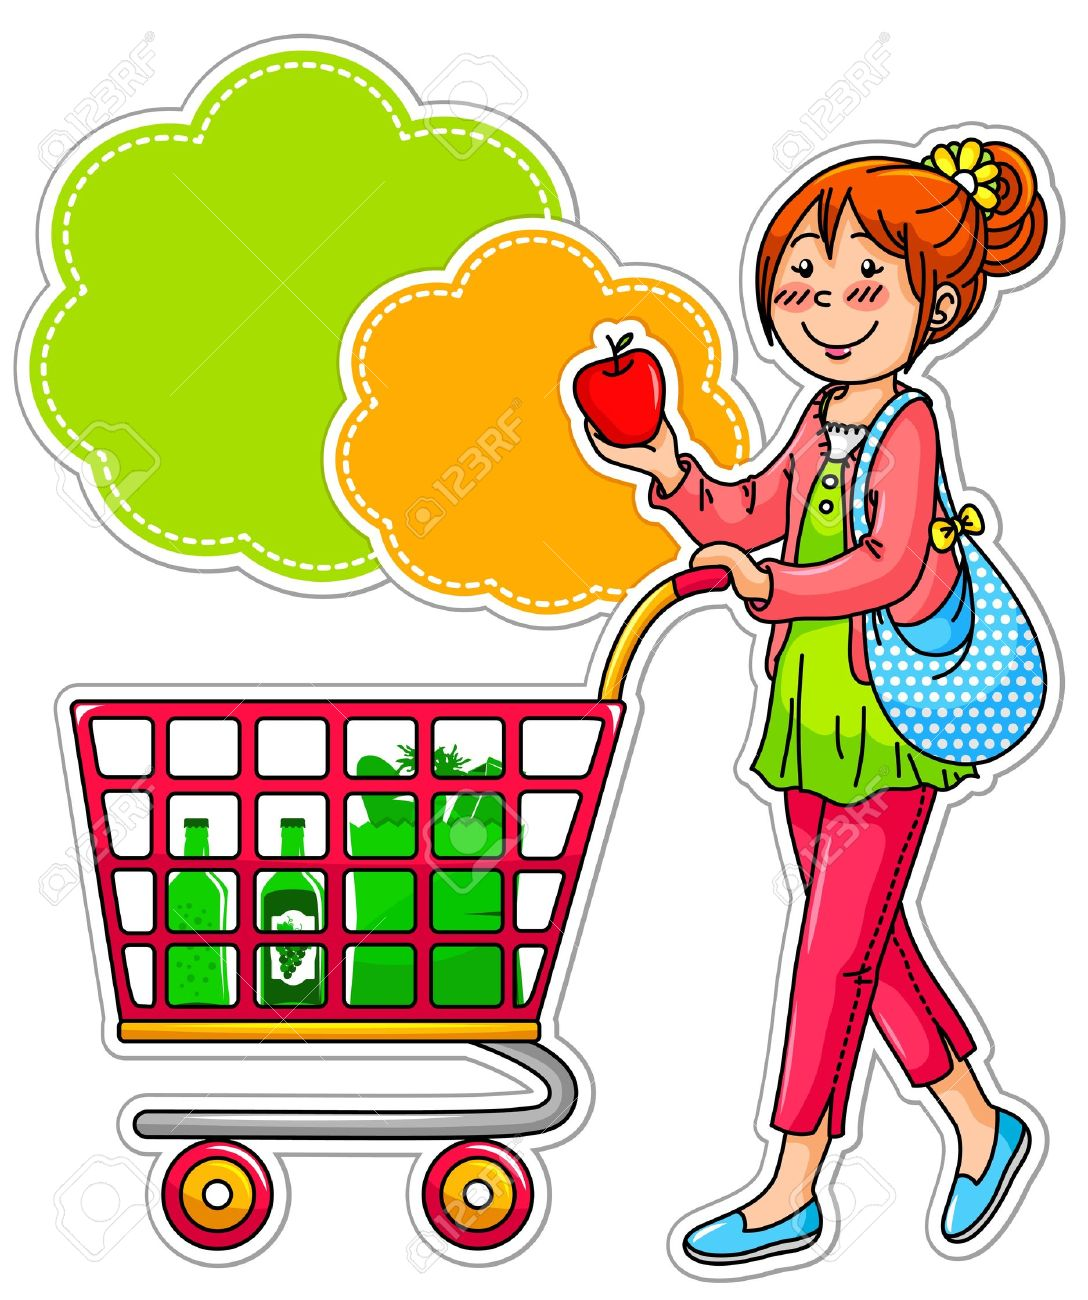 svg download Free grocery cliparts download. Supermarket clipart animated